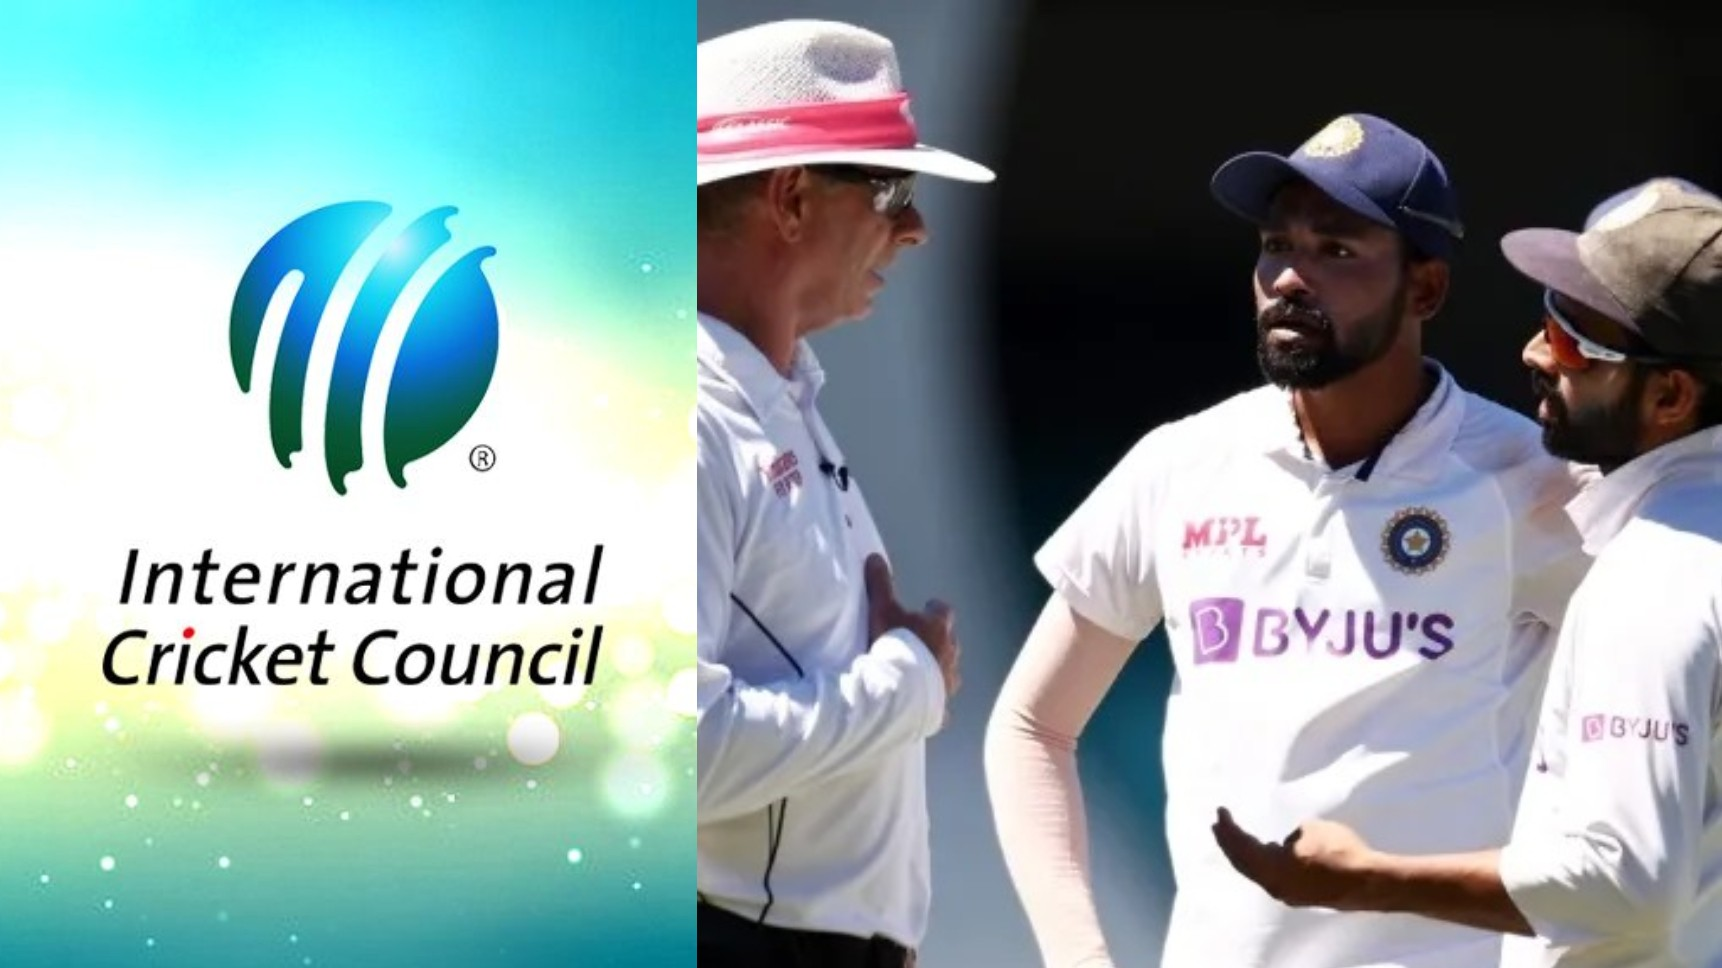 AUS v IND 2020-21: ICC strongly condemns incidents of racial abuse of Indian players during SCG Test